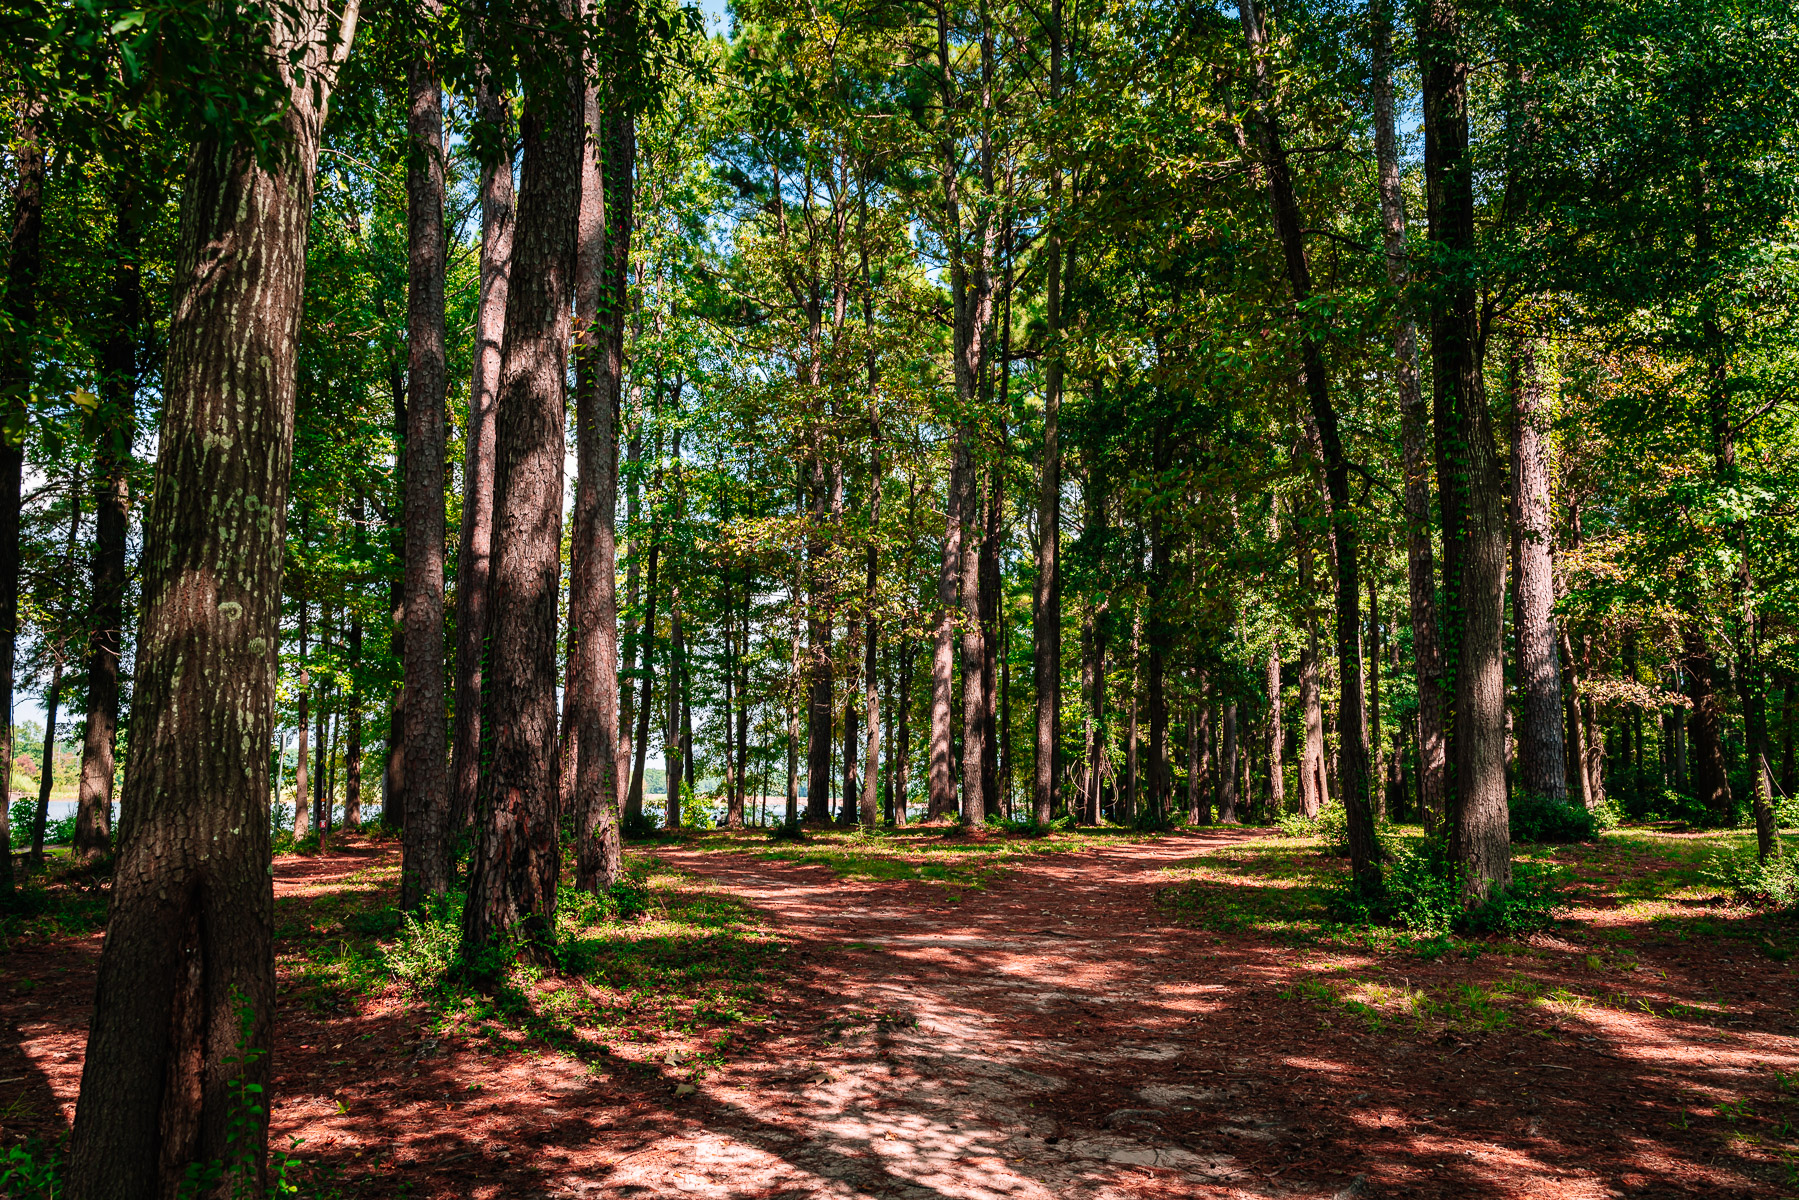 The pine forest of East Texas' Martin Creek Lake State Park.